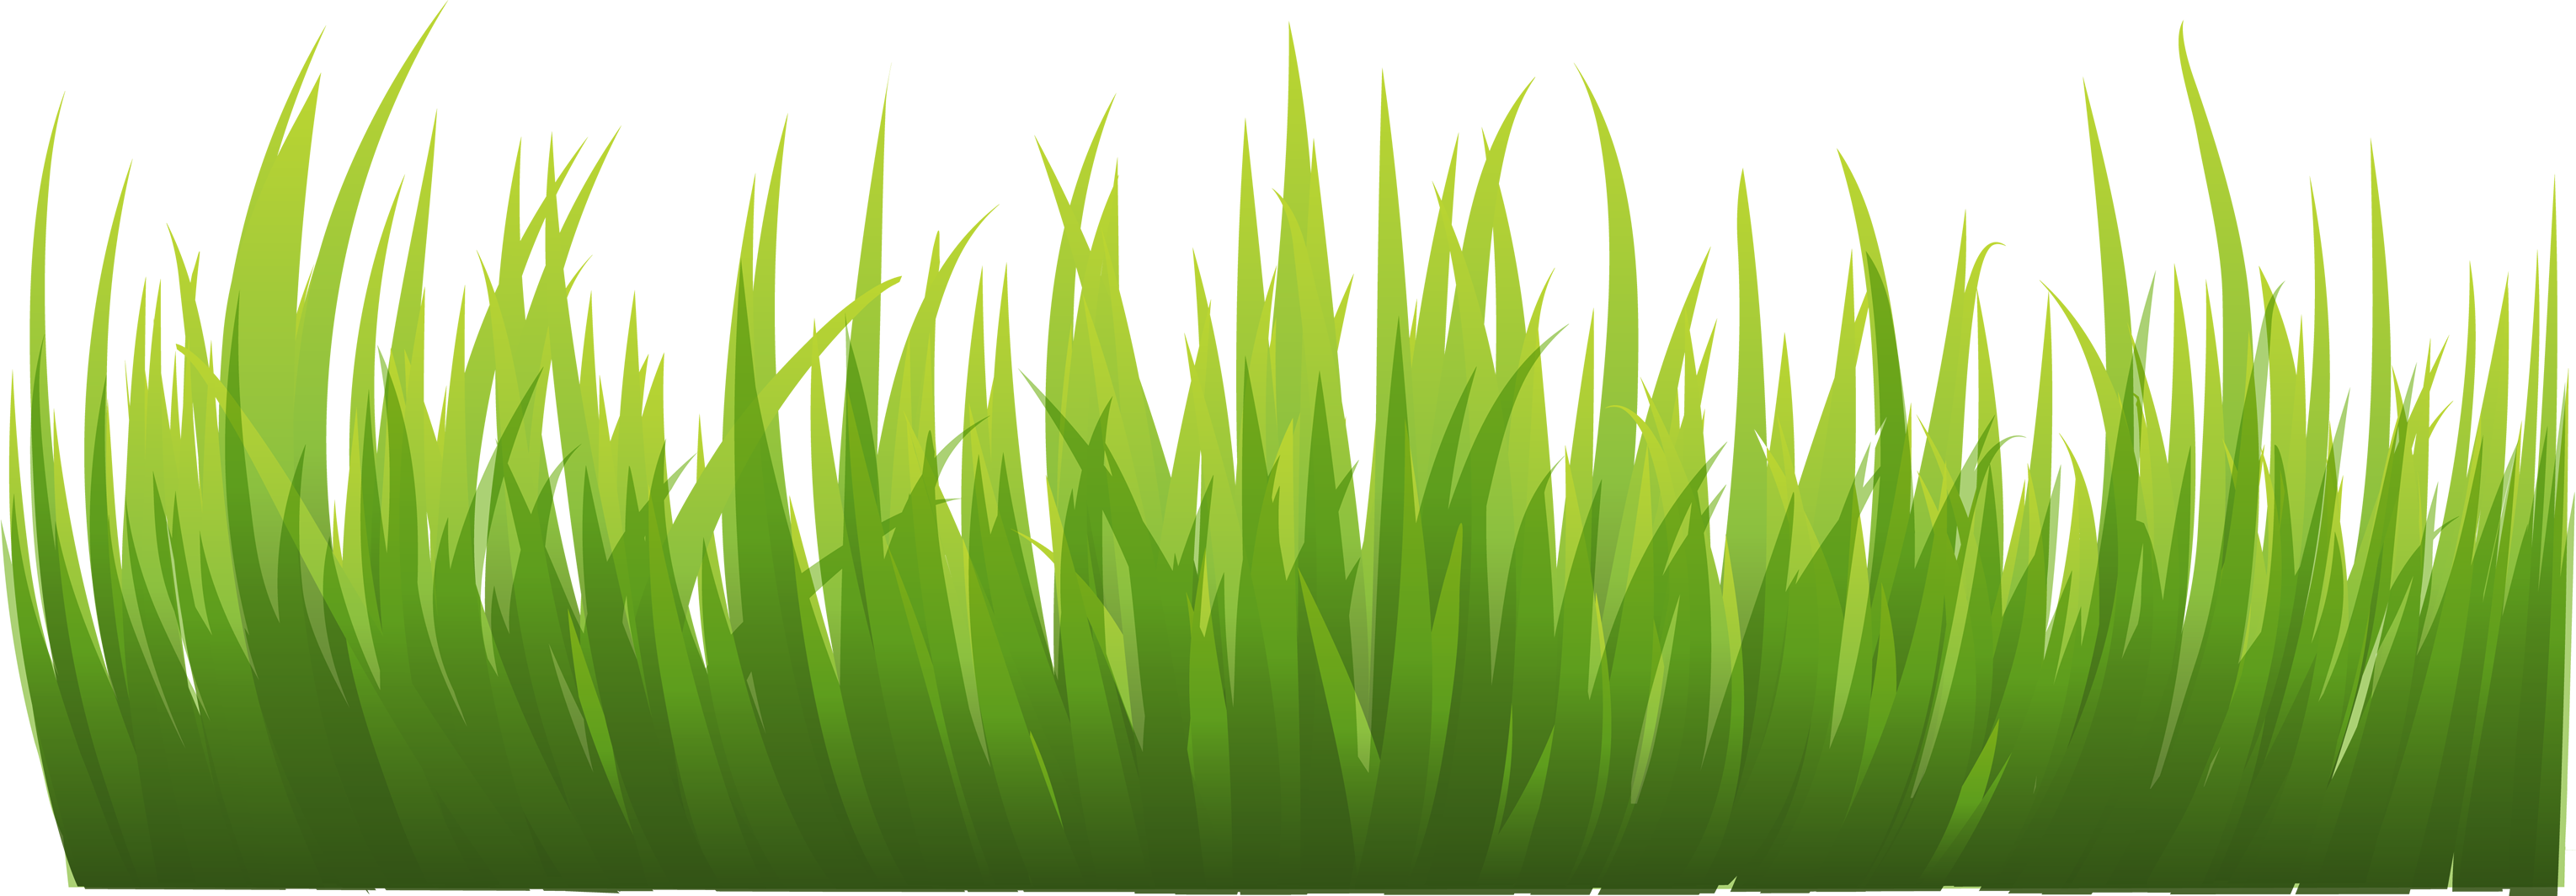 Cesped clipart picture library Png Image - Grass Png Clipart , Transparent Cartoon - Jing.fm picture library